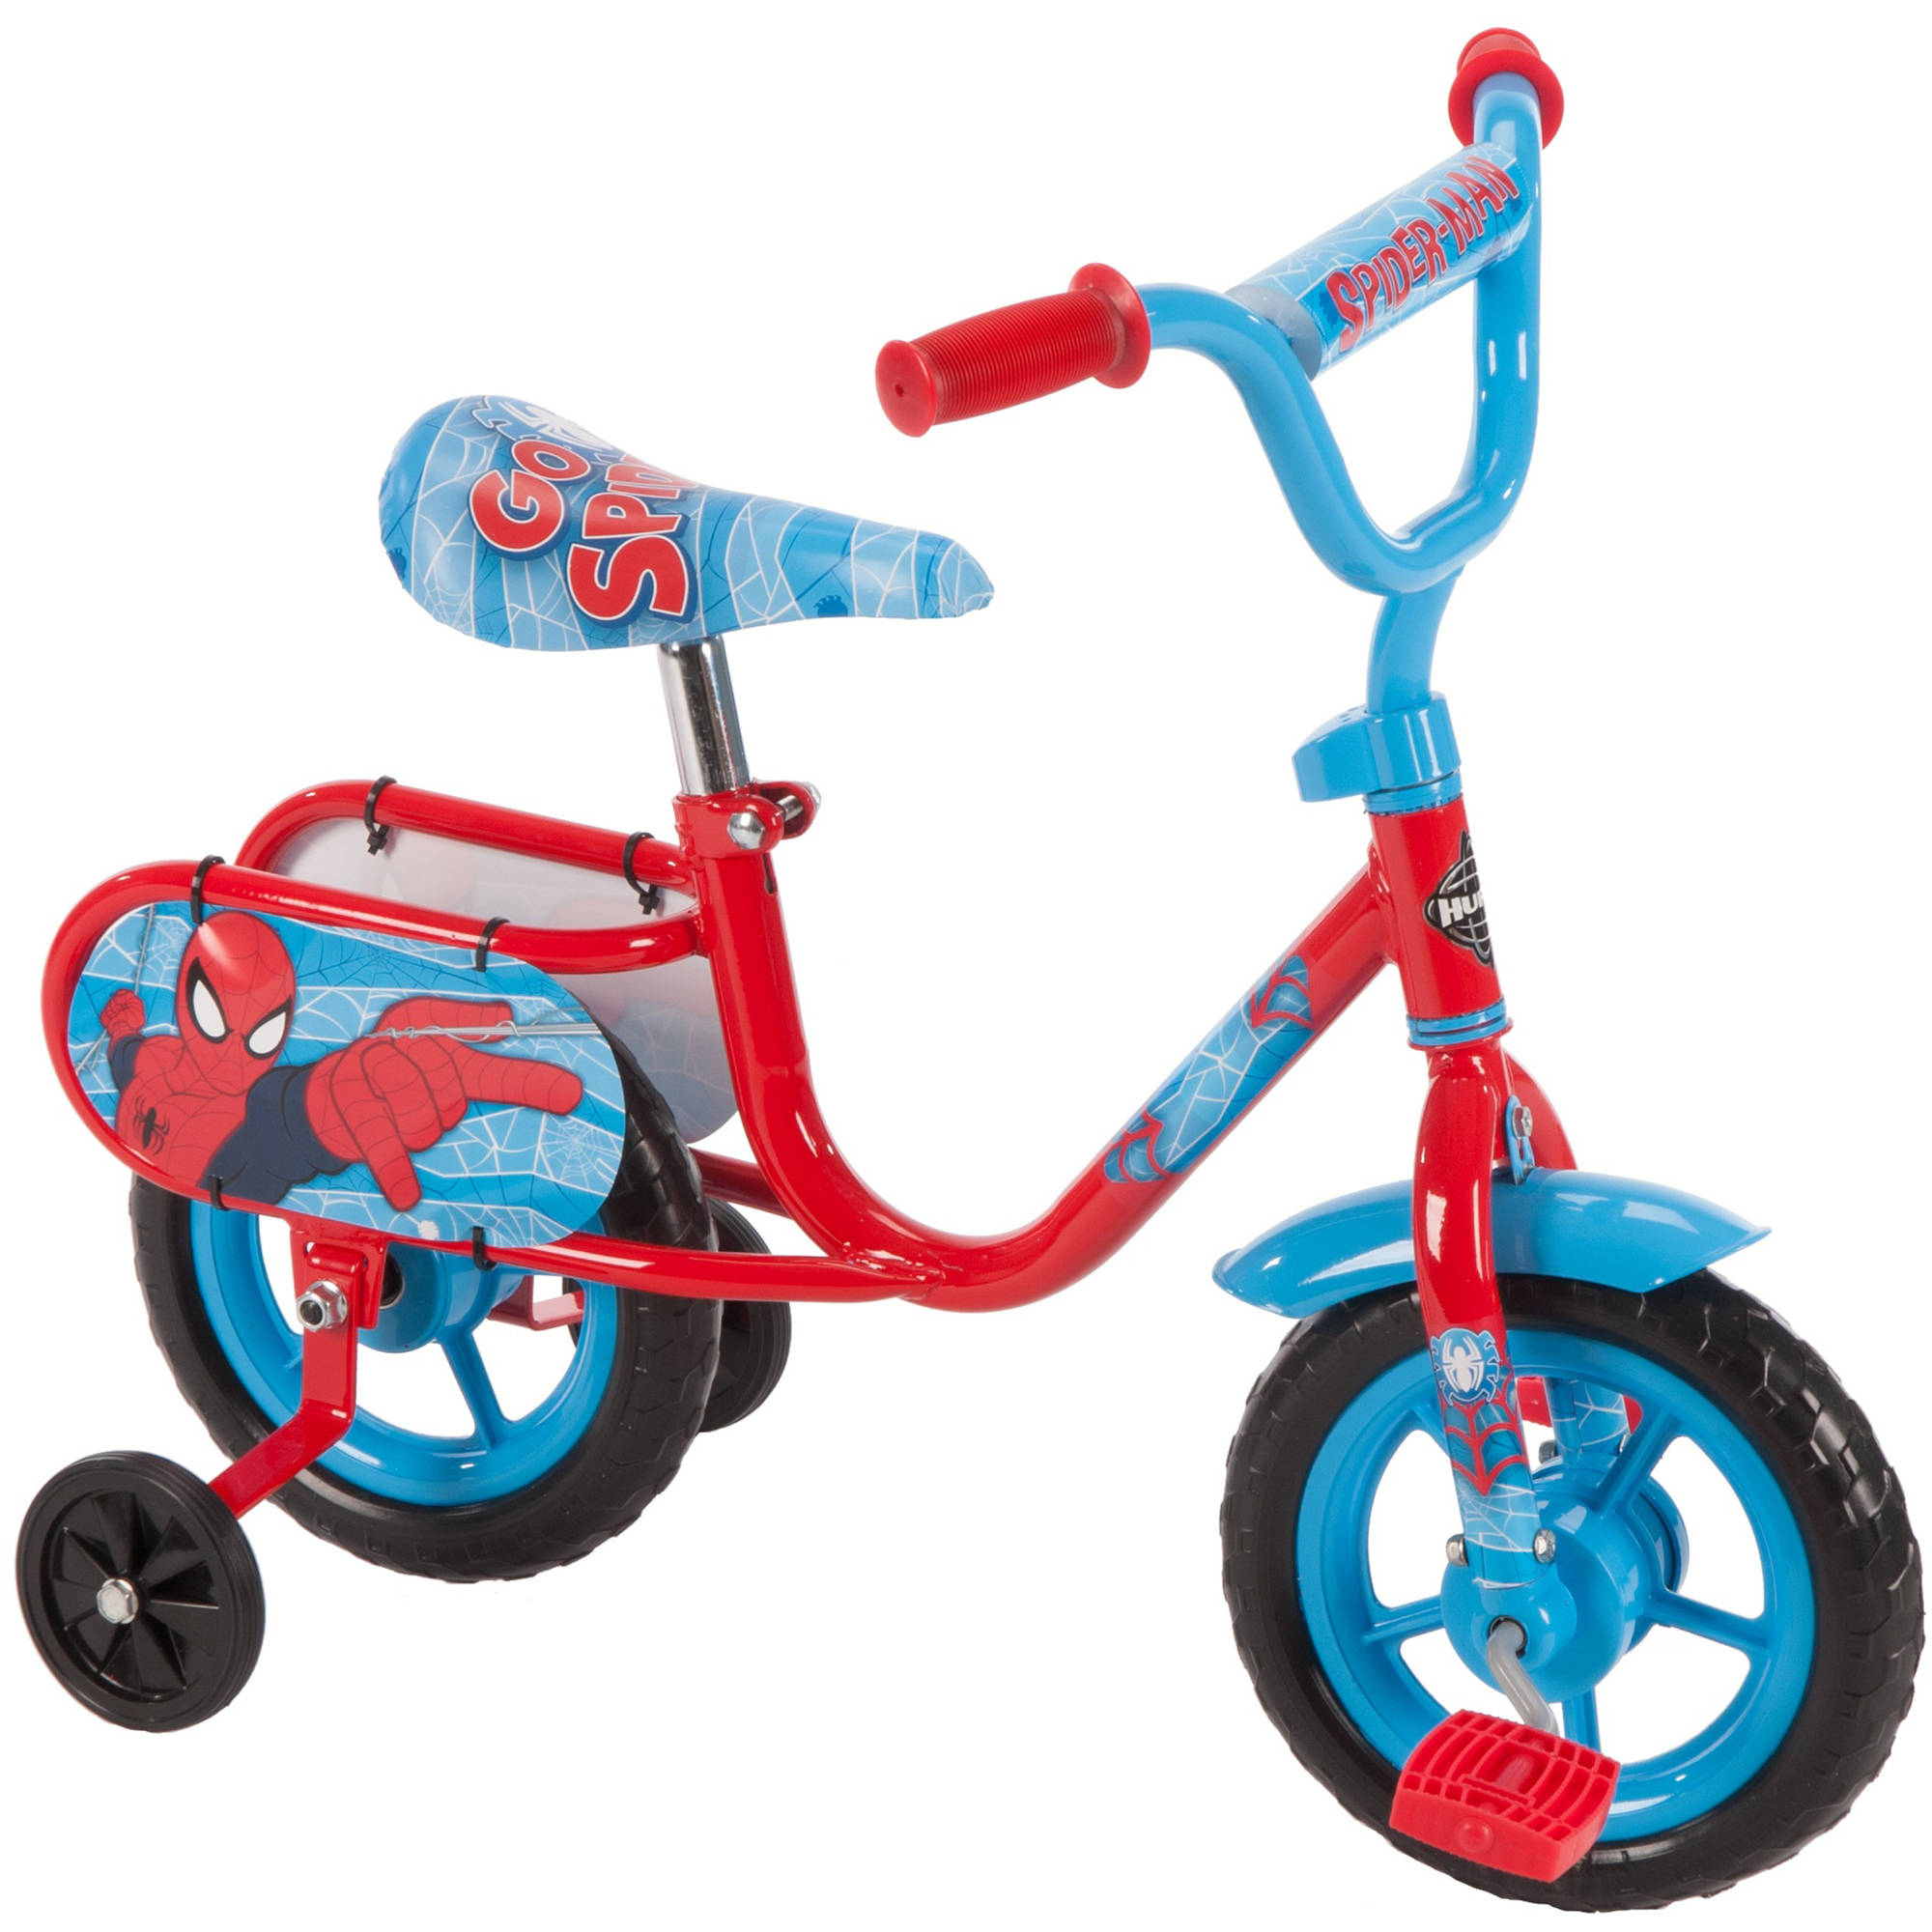 Marvel Spider-Man 10″ Boys' Pedal Cycle Bike for Toddlers, by Huffy